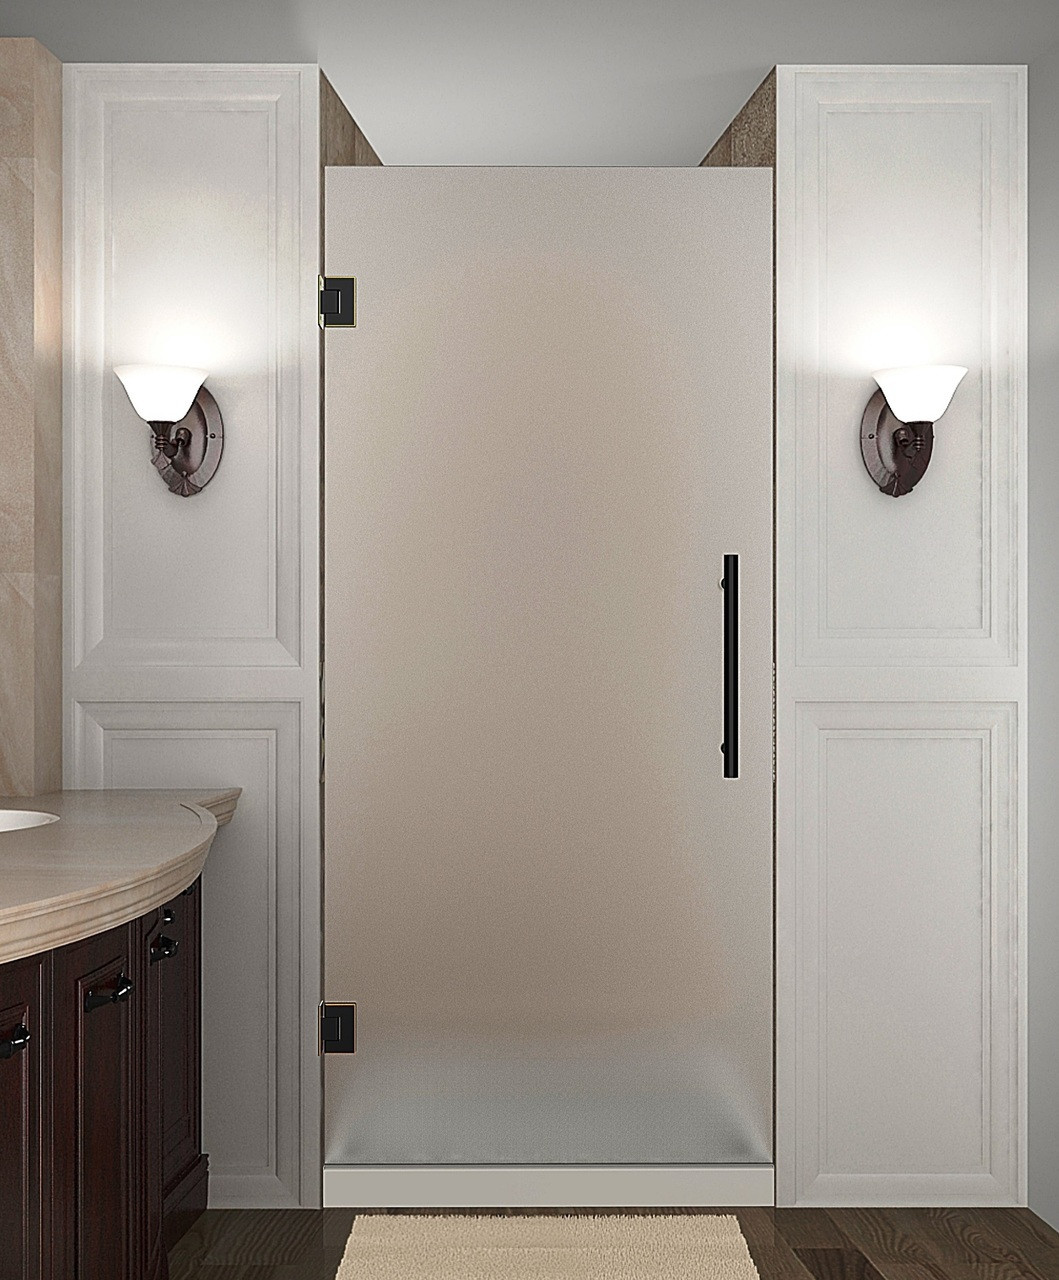 Aston SDR995F-ORB-26-10 Cascadia 26 In x 72 In Completely Frameless Frosted Glass Shower Door In Oil Rubbed Bronze